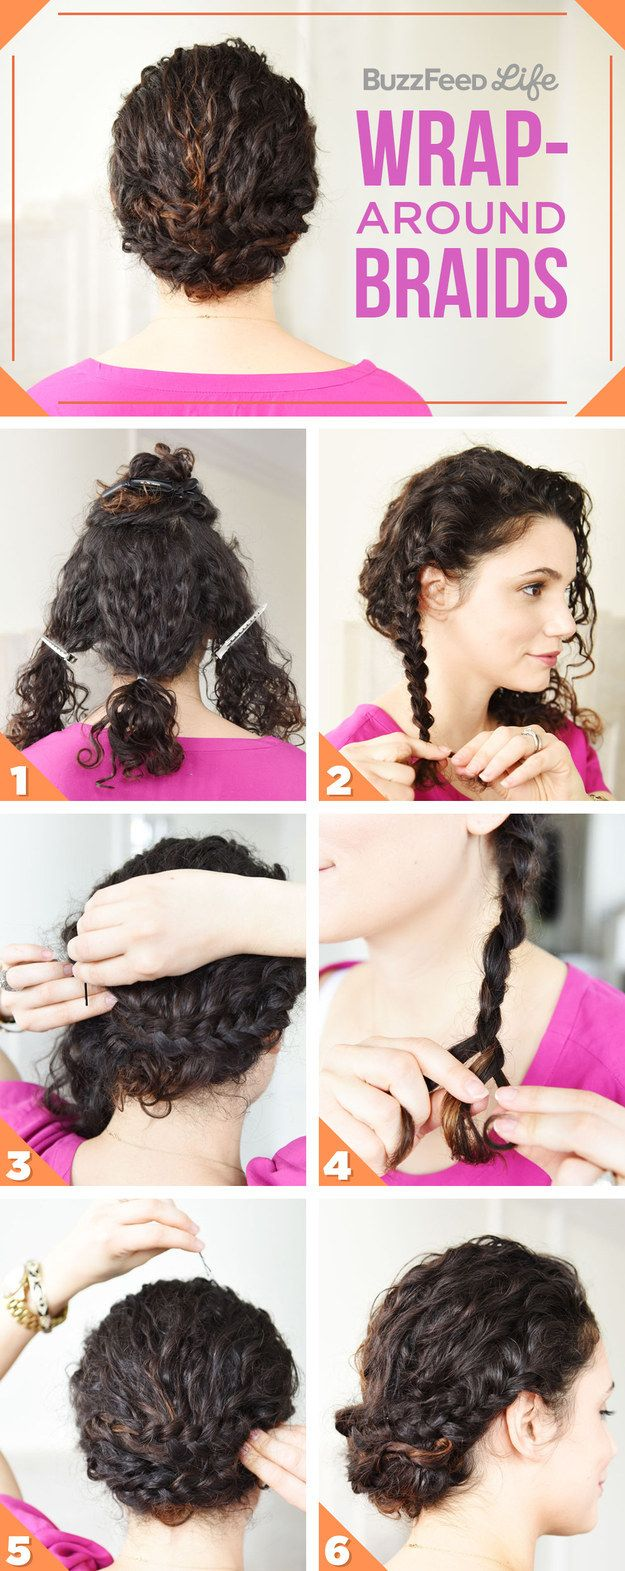 wrap-around braids | 14 wedding hairstyles you can diy for the